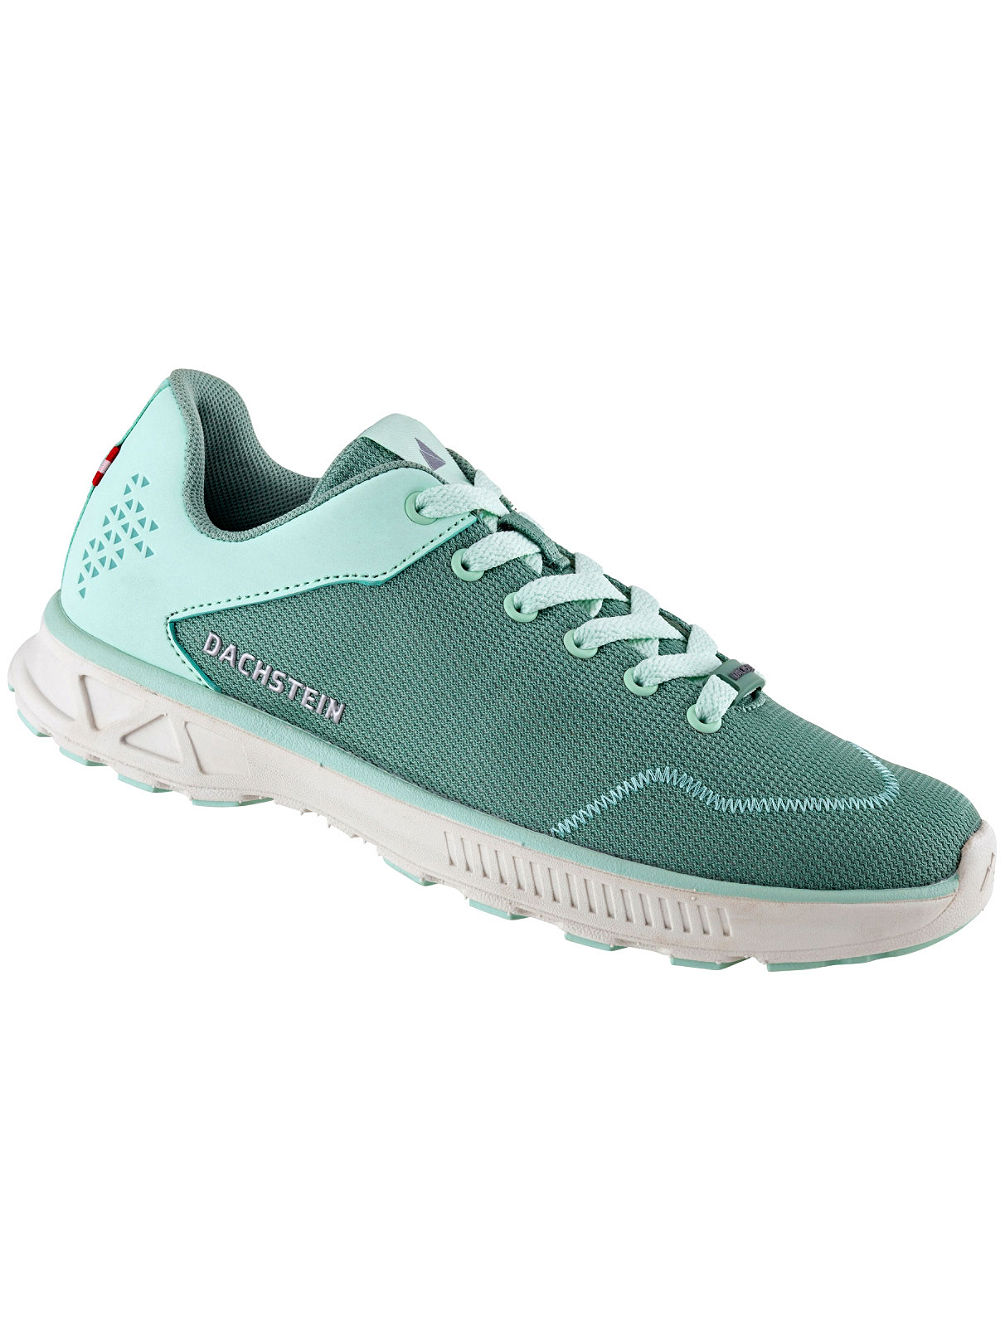 Skylite Shoes Women